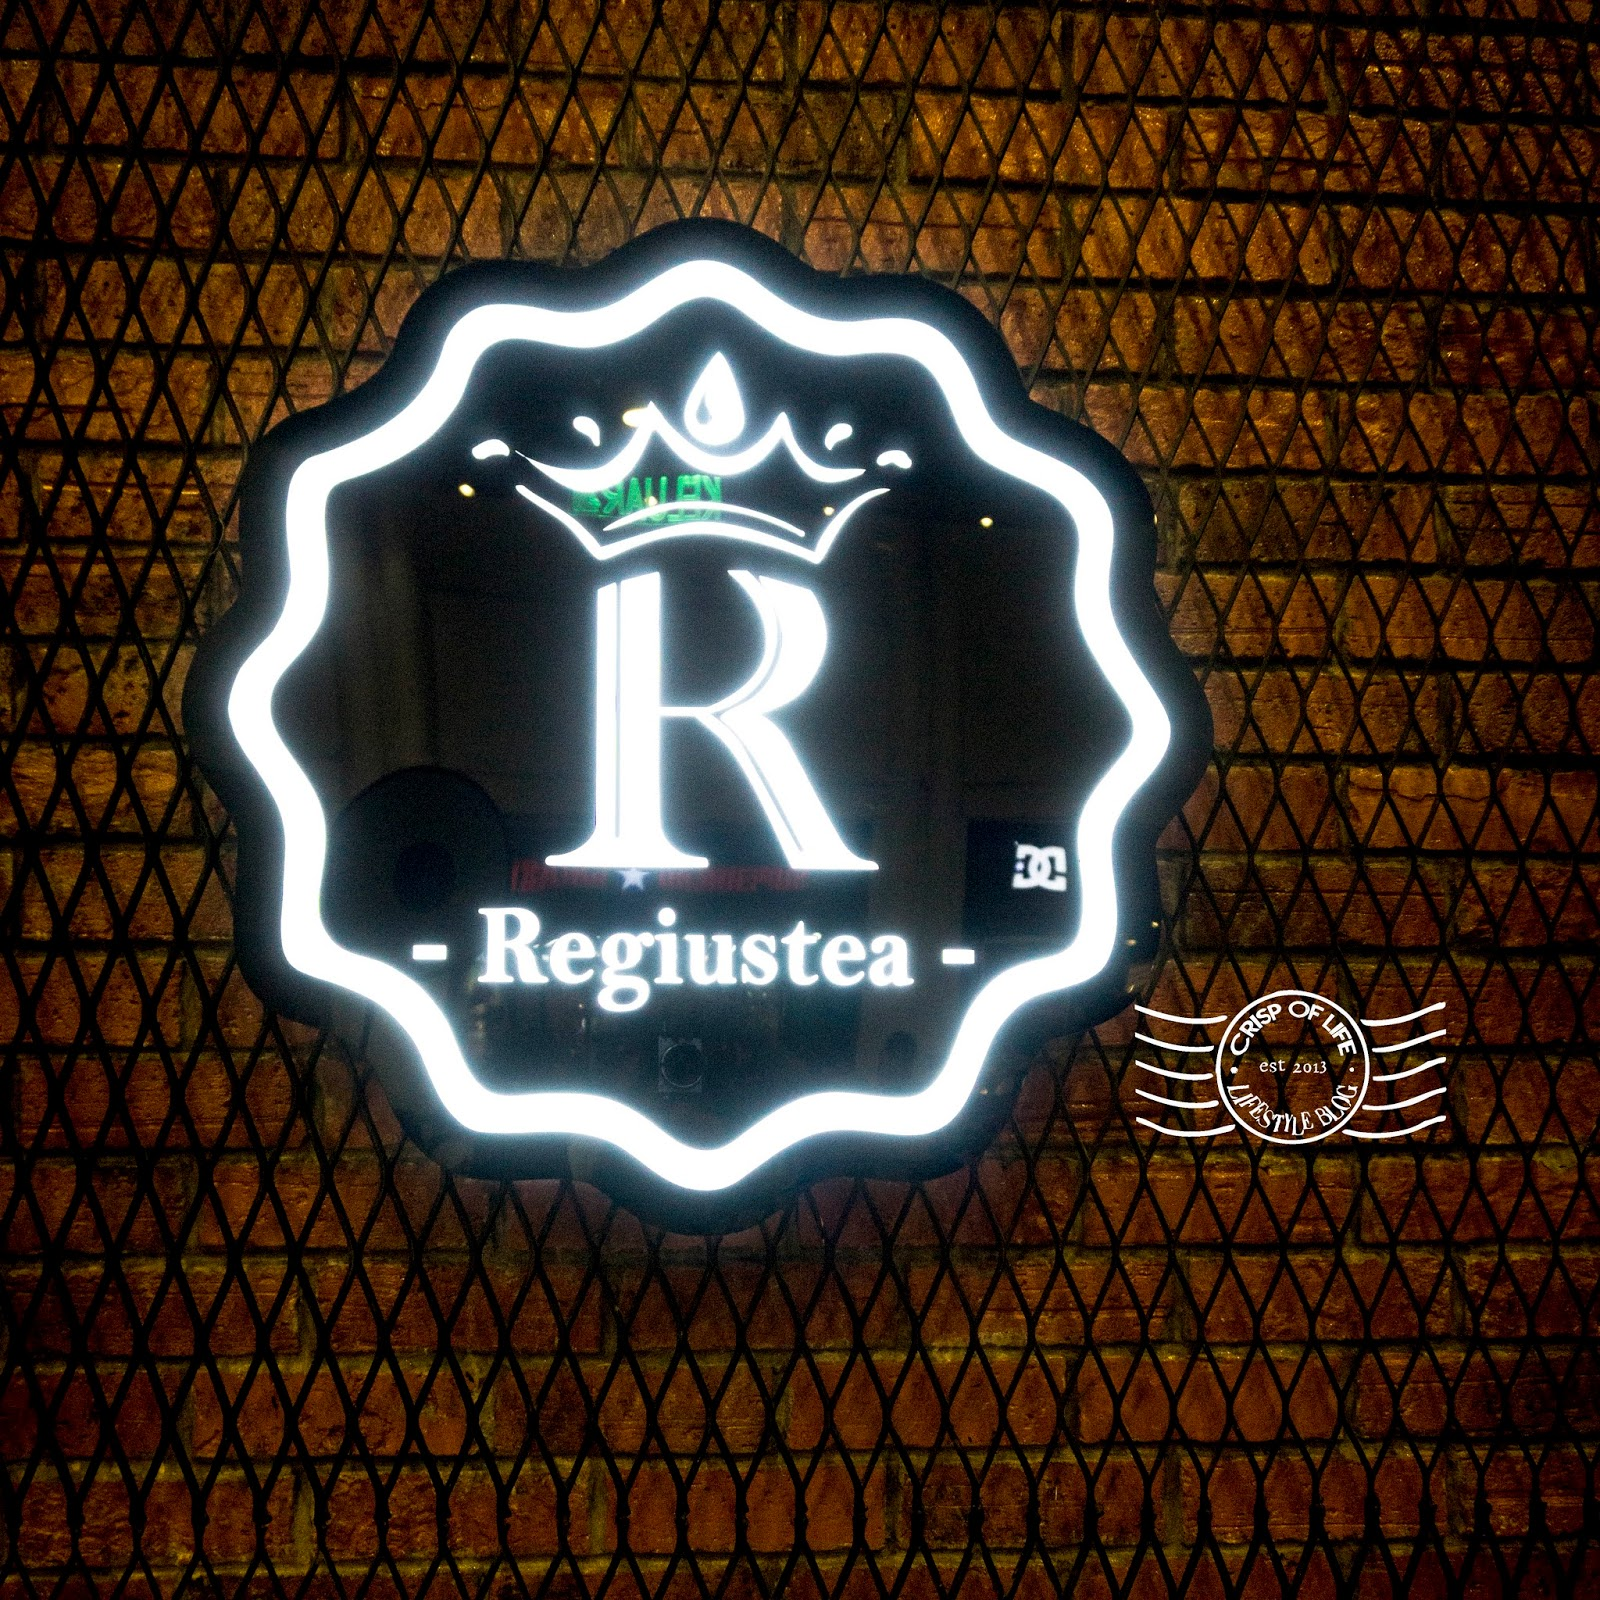 Regiustea @ Queensbay Mall, Penang